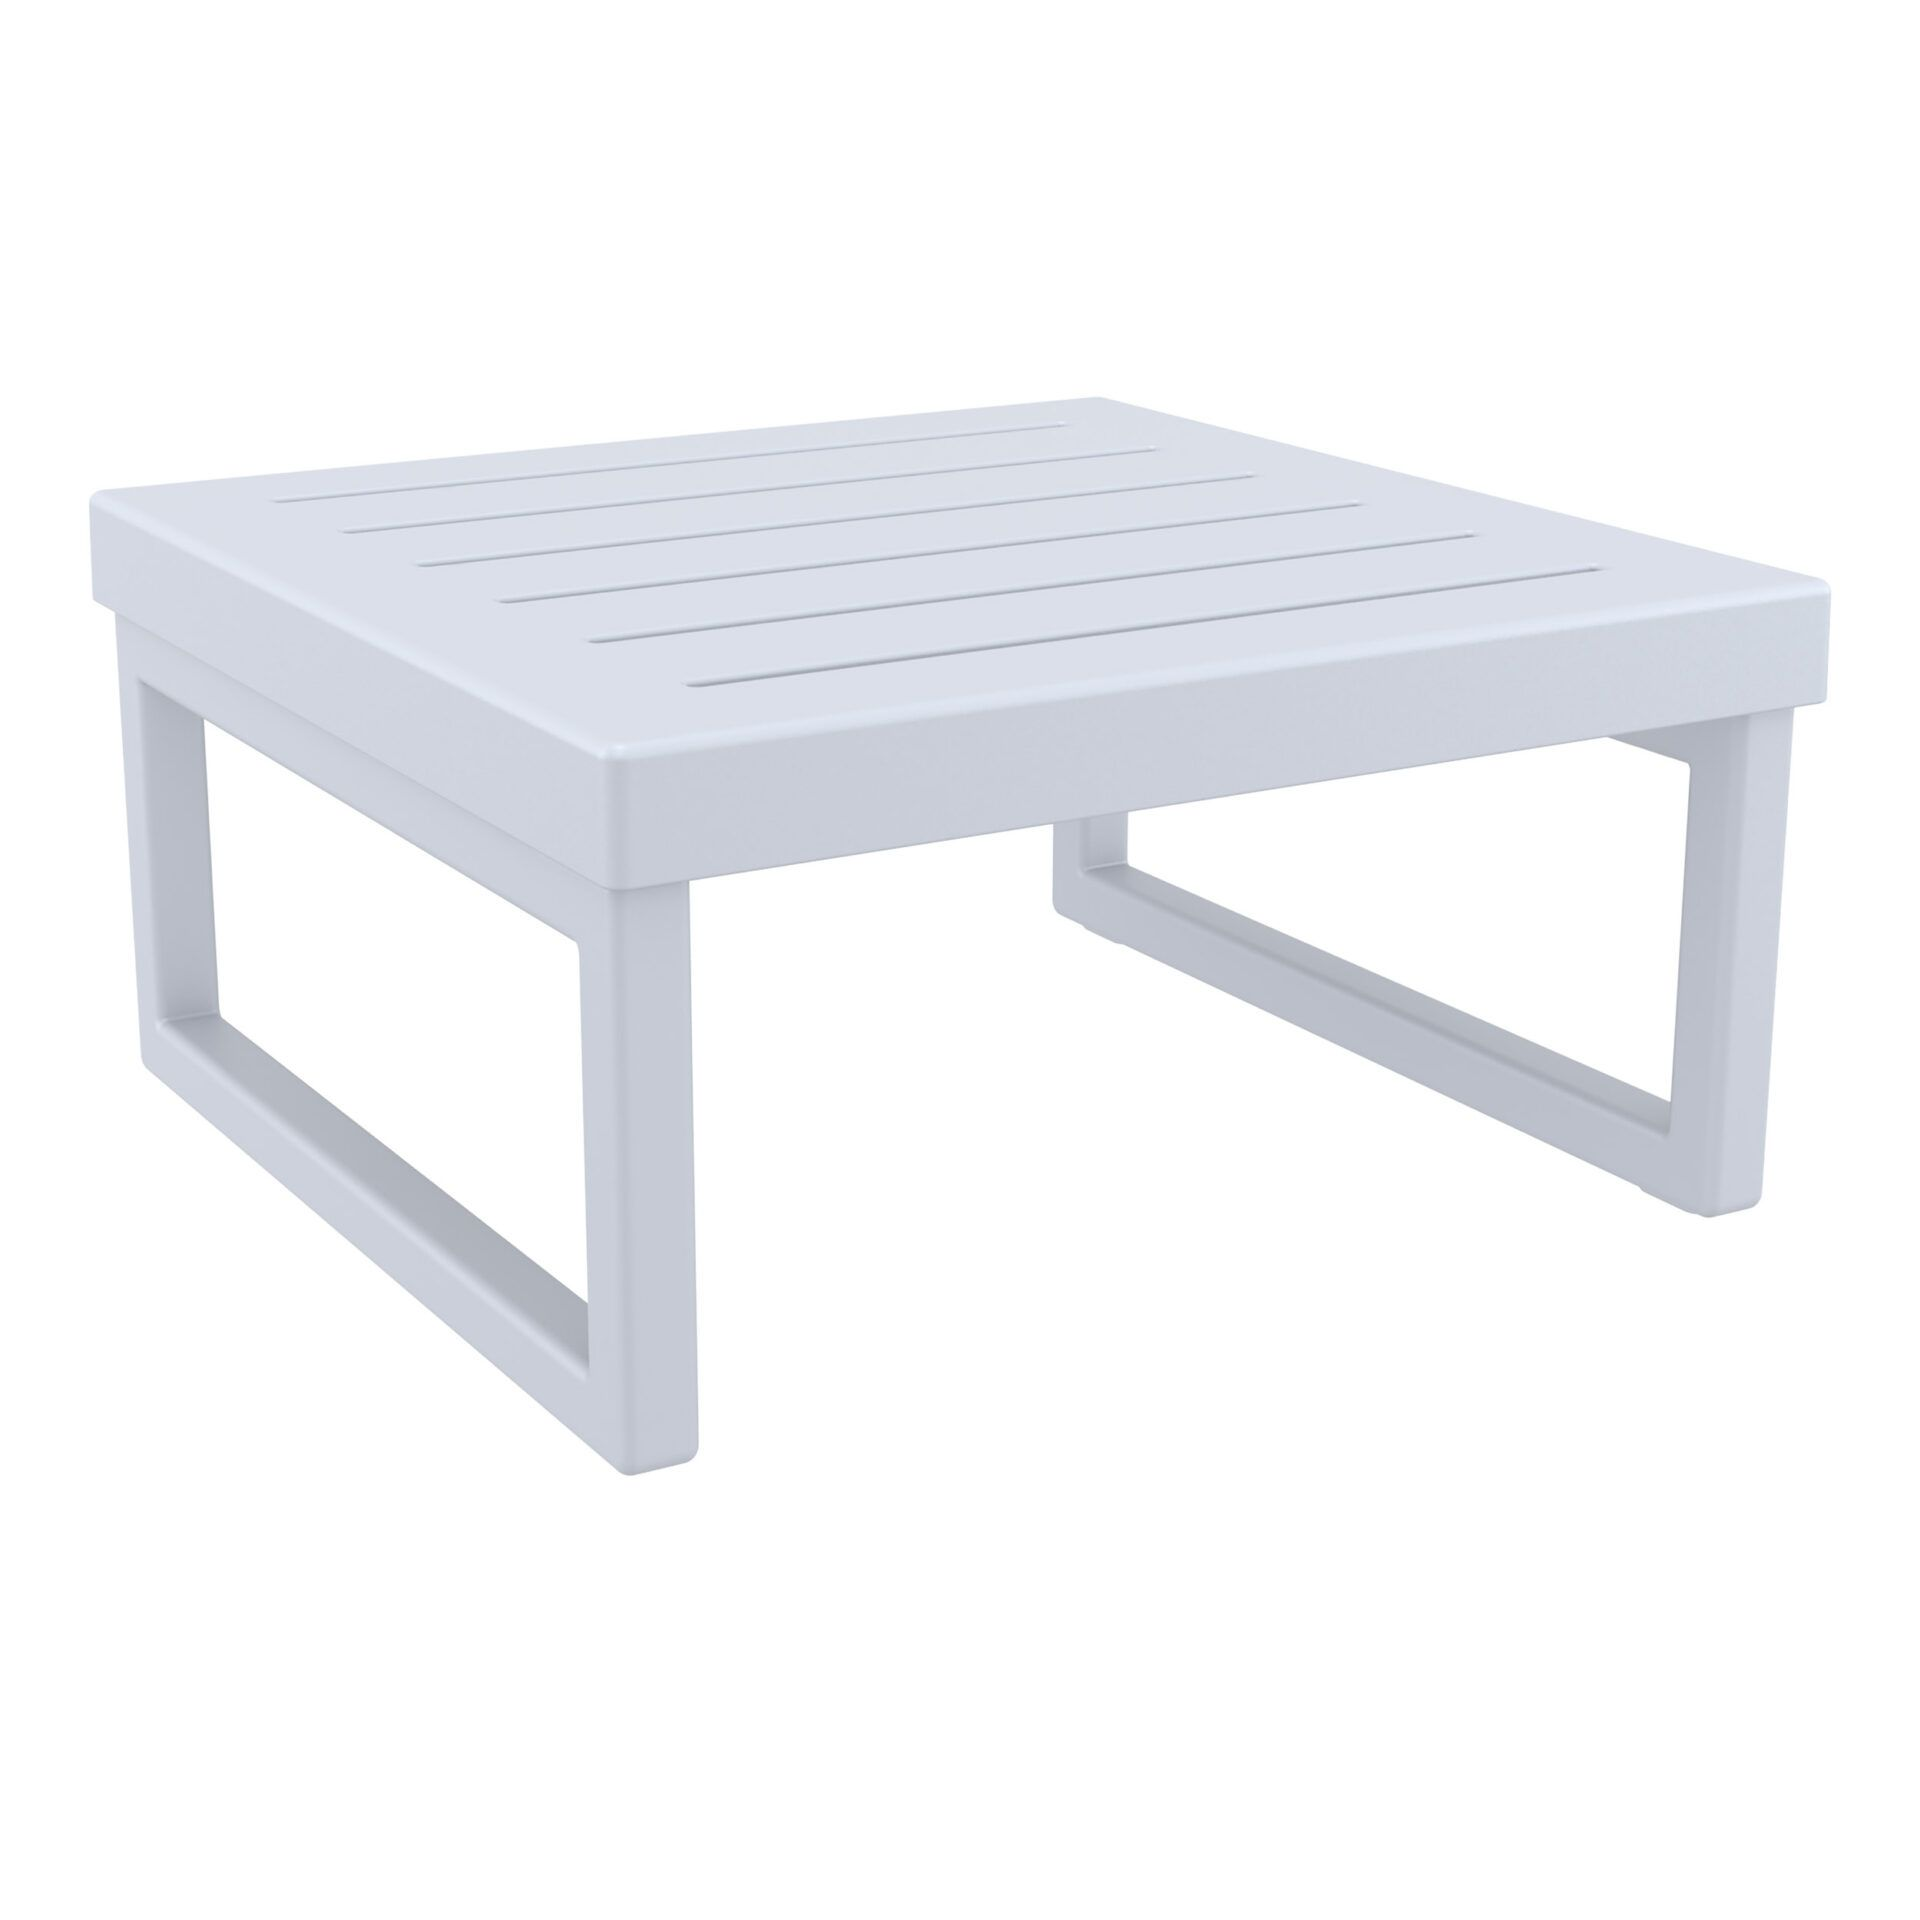 mykonos resort lounge table silvergrey front side